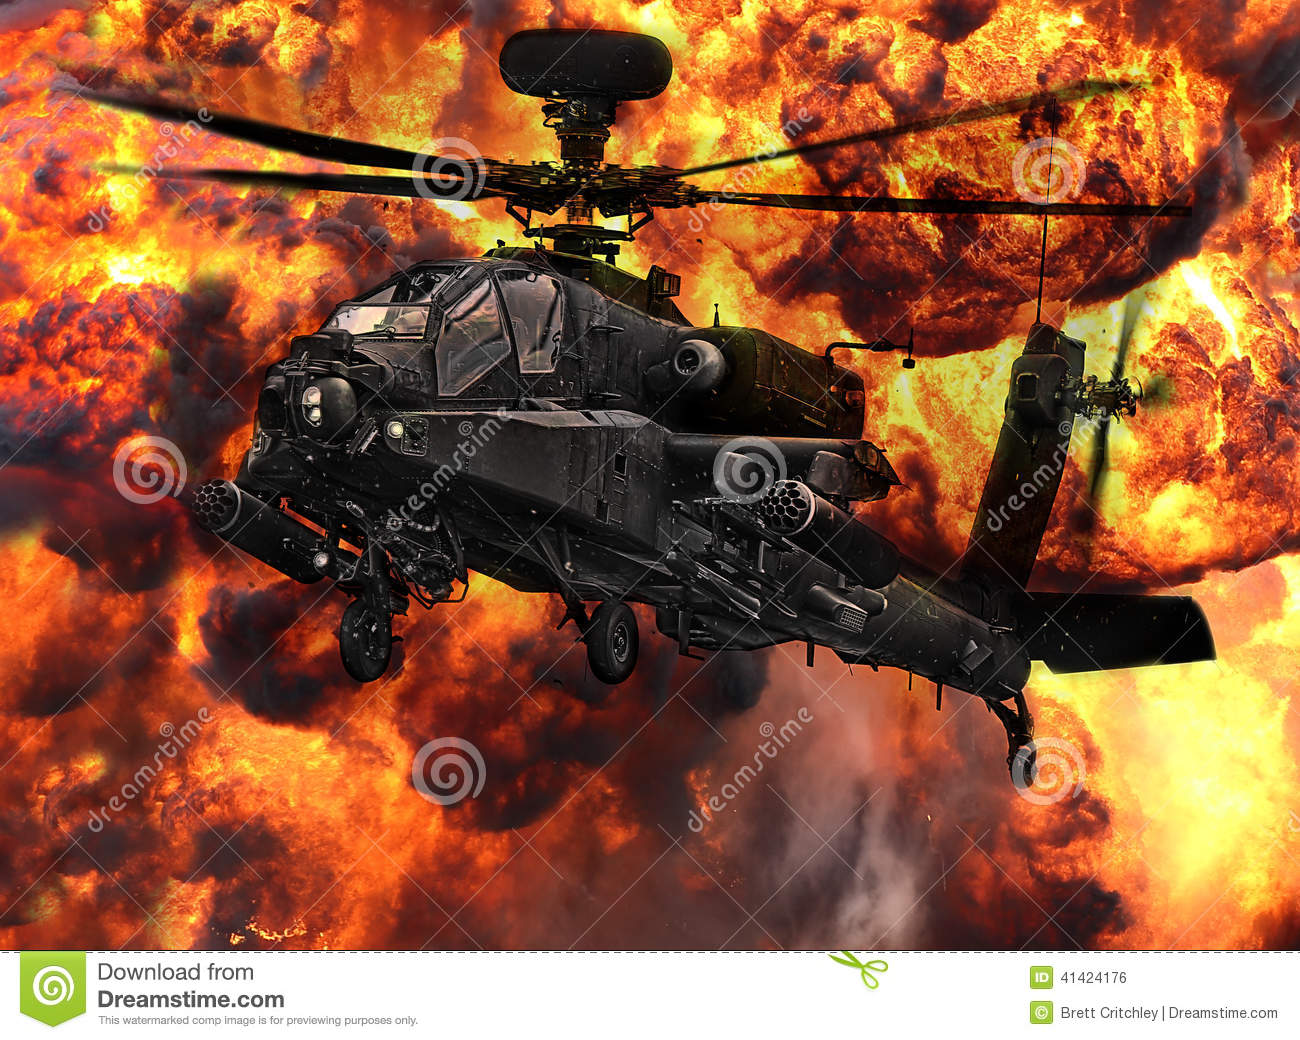 apache helicopter gunship with Stock Photo Apache Gunship Helicopter Explosion Attack Huge War Image41424176 on Ch 47 Chinook Helicopter Jim Hubbard further Stock Photography Apache Helicopter Volkel  herlands June Special Painted Dutch Air Force Ah Display Royal  herlands Air Force Days Image31615152 furthermore RIAT 2007 AH64 Apache 59911381 besides Stock Photo Apache Gunship Helicopter Explosion Attack Huge War Image41424176 moreover Eurocopter Tiger Airbus Helicopters Tiger Attack Helicopter 1441.